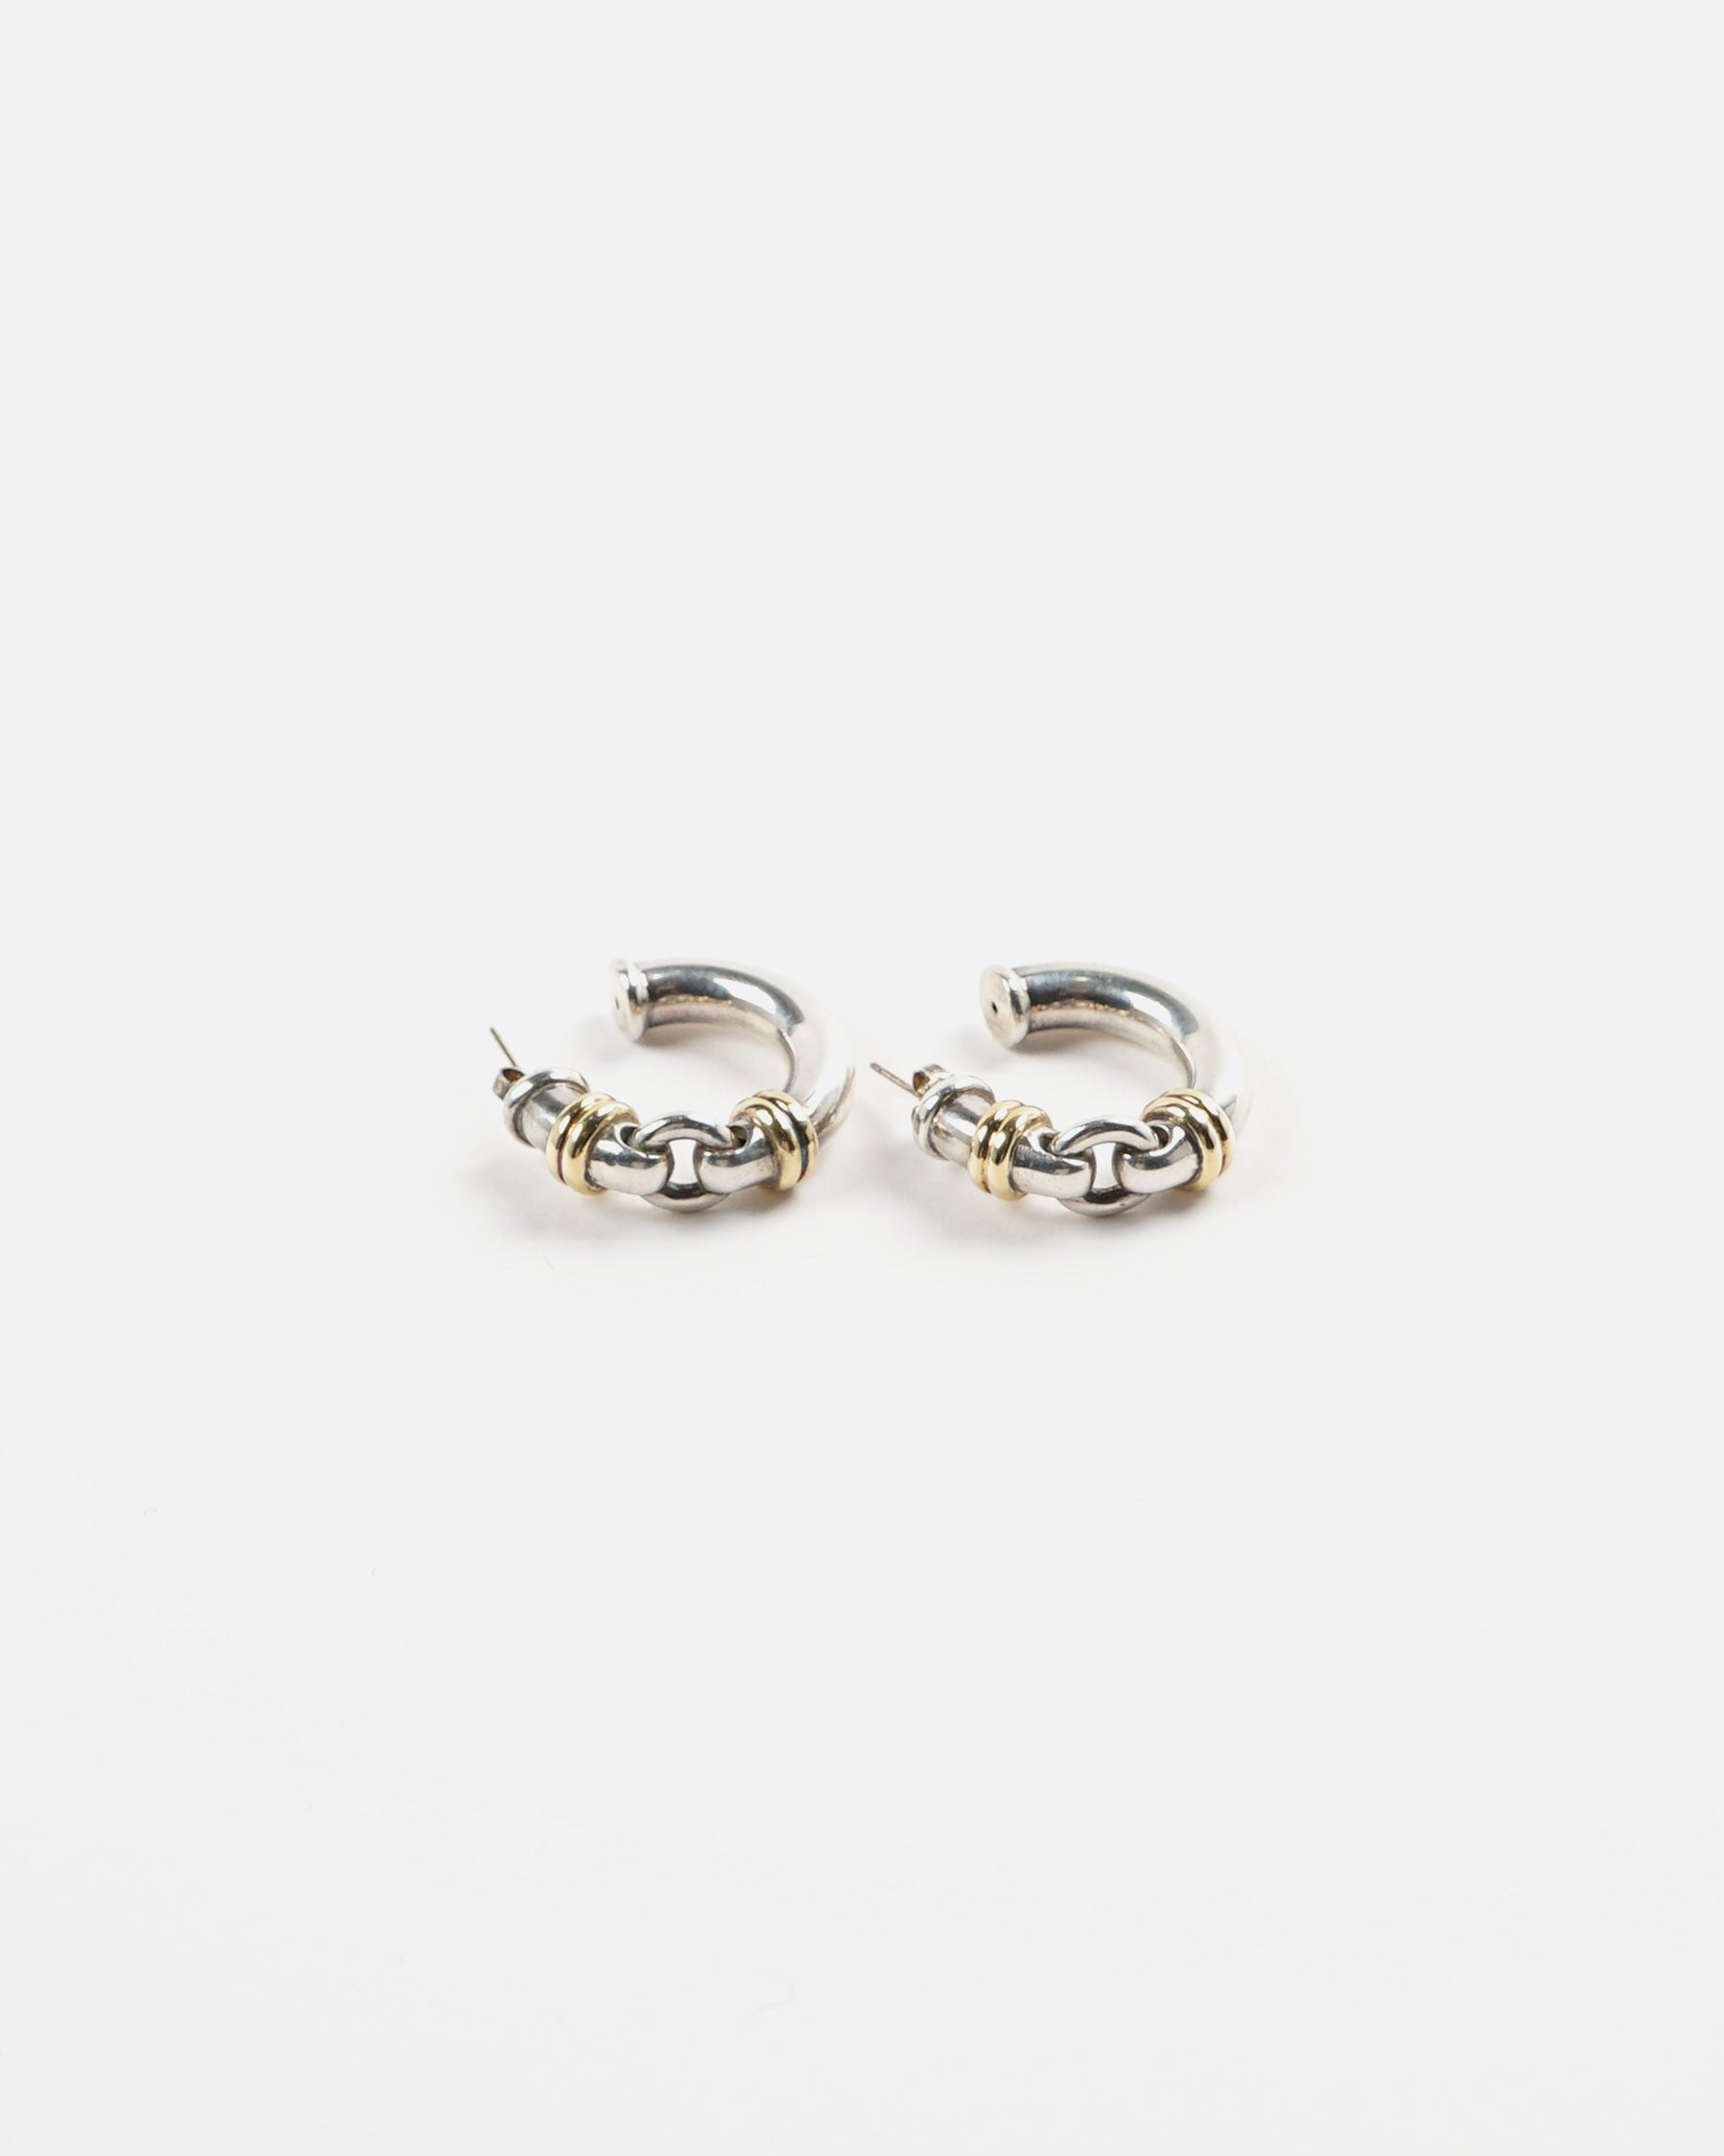 18k / Silver Hoop Earrings